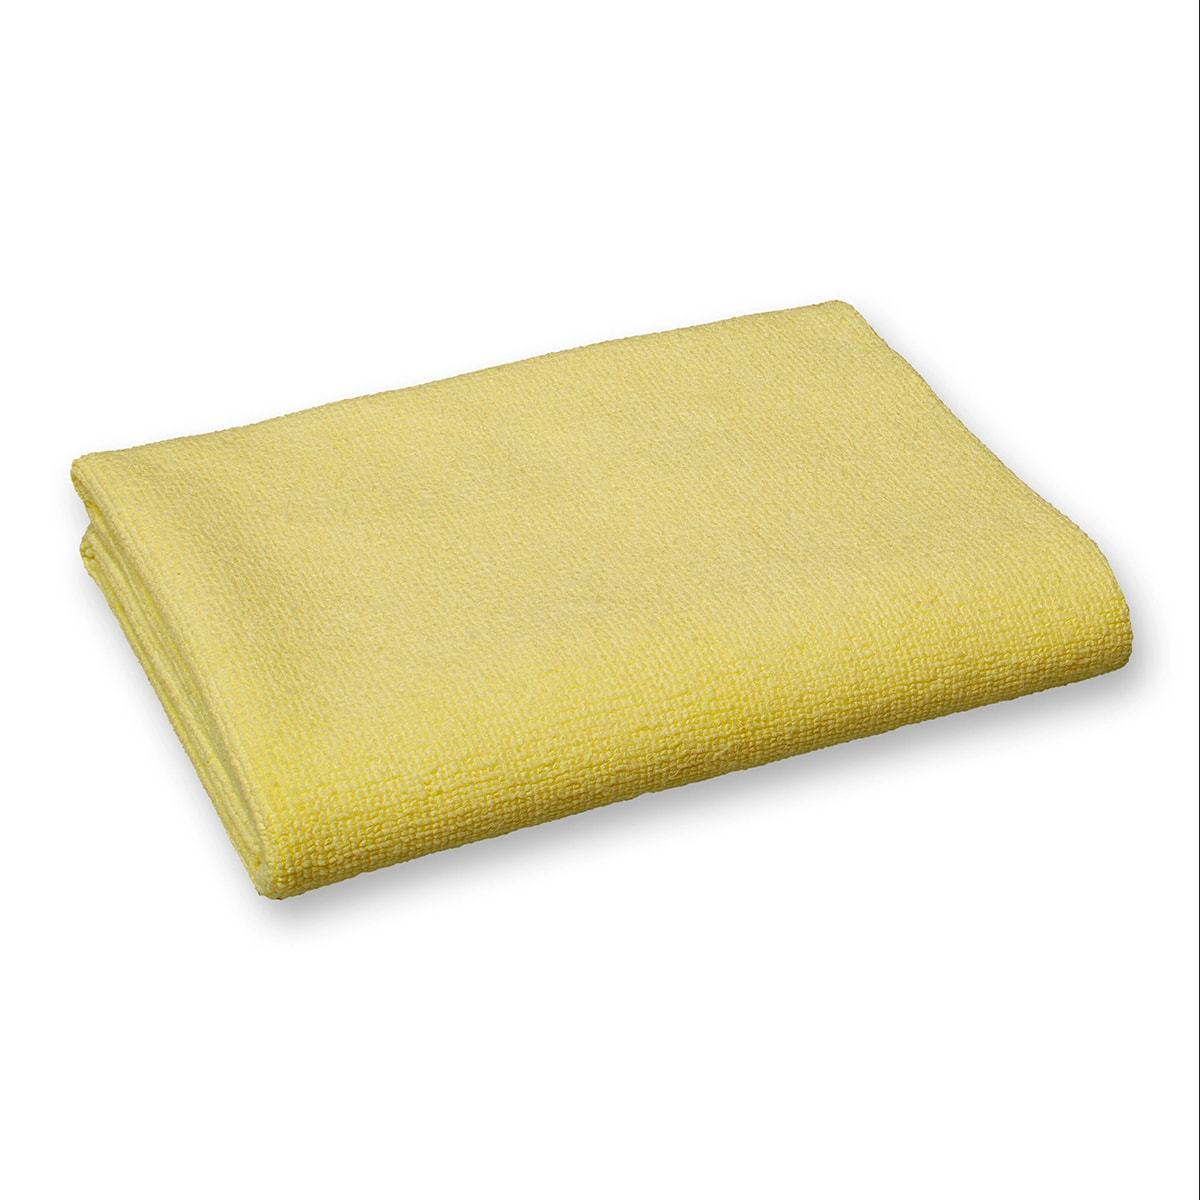 Microfiber Madness Yellow Fellow 2.0